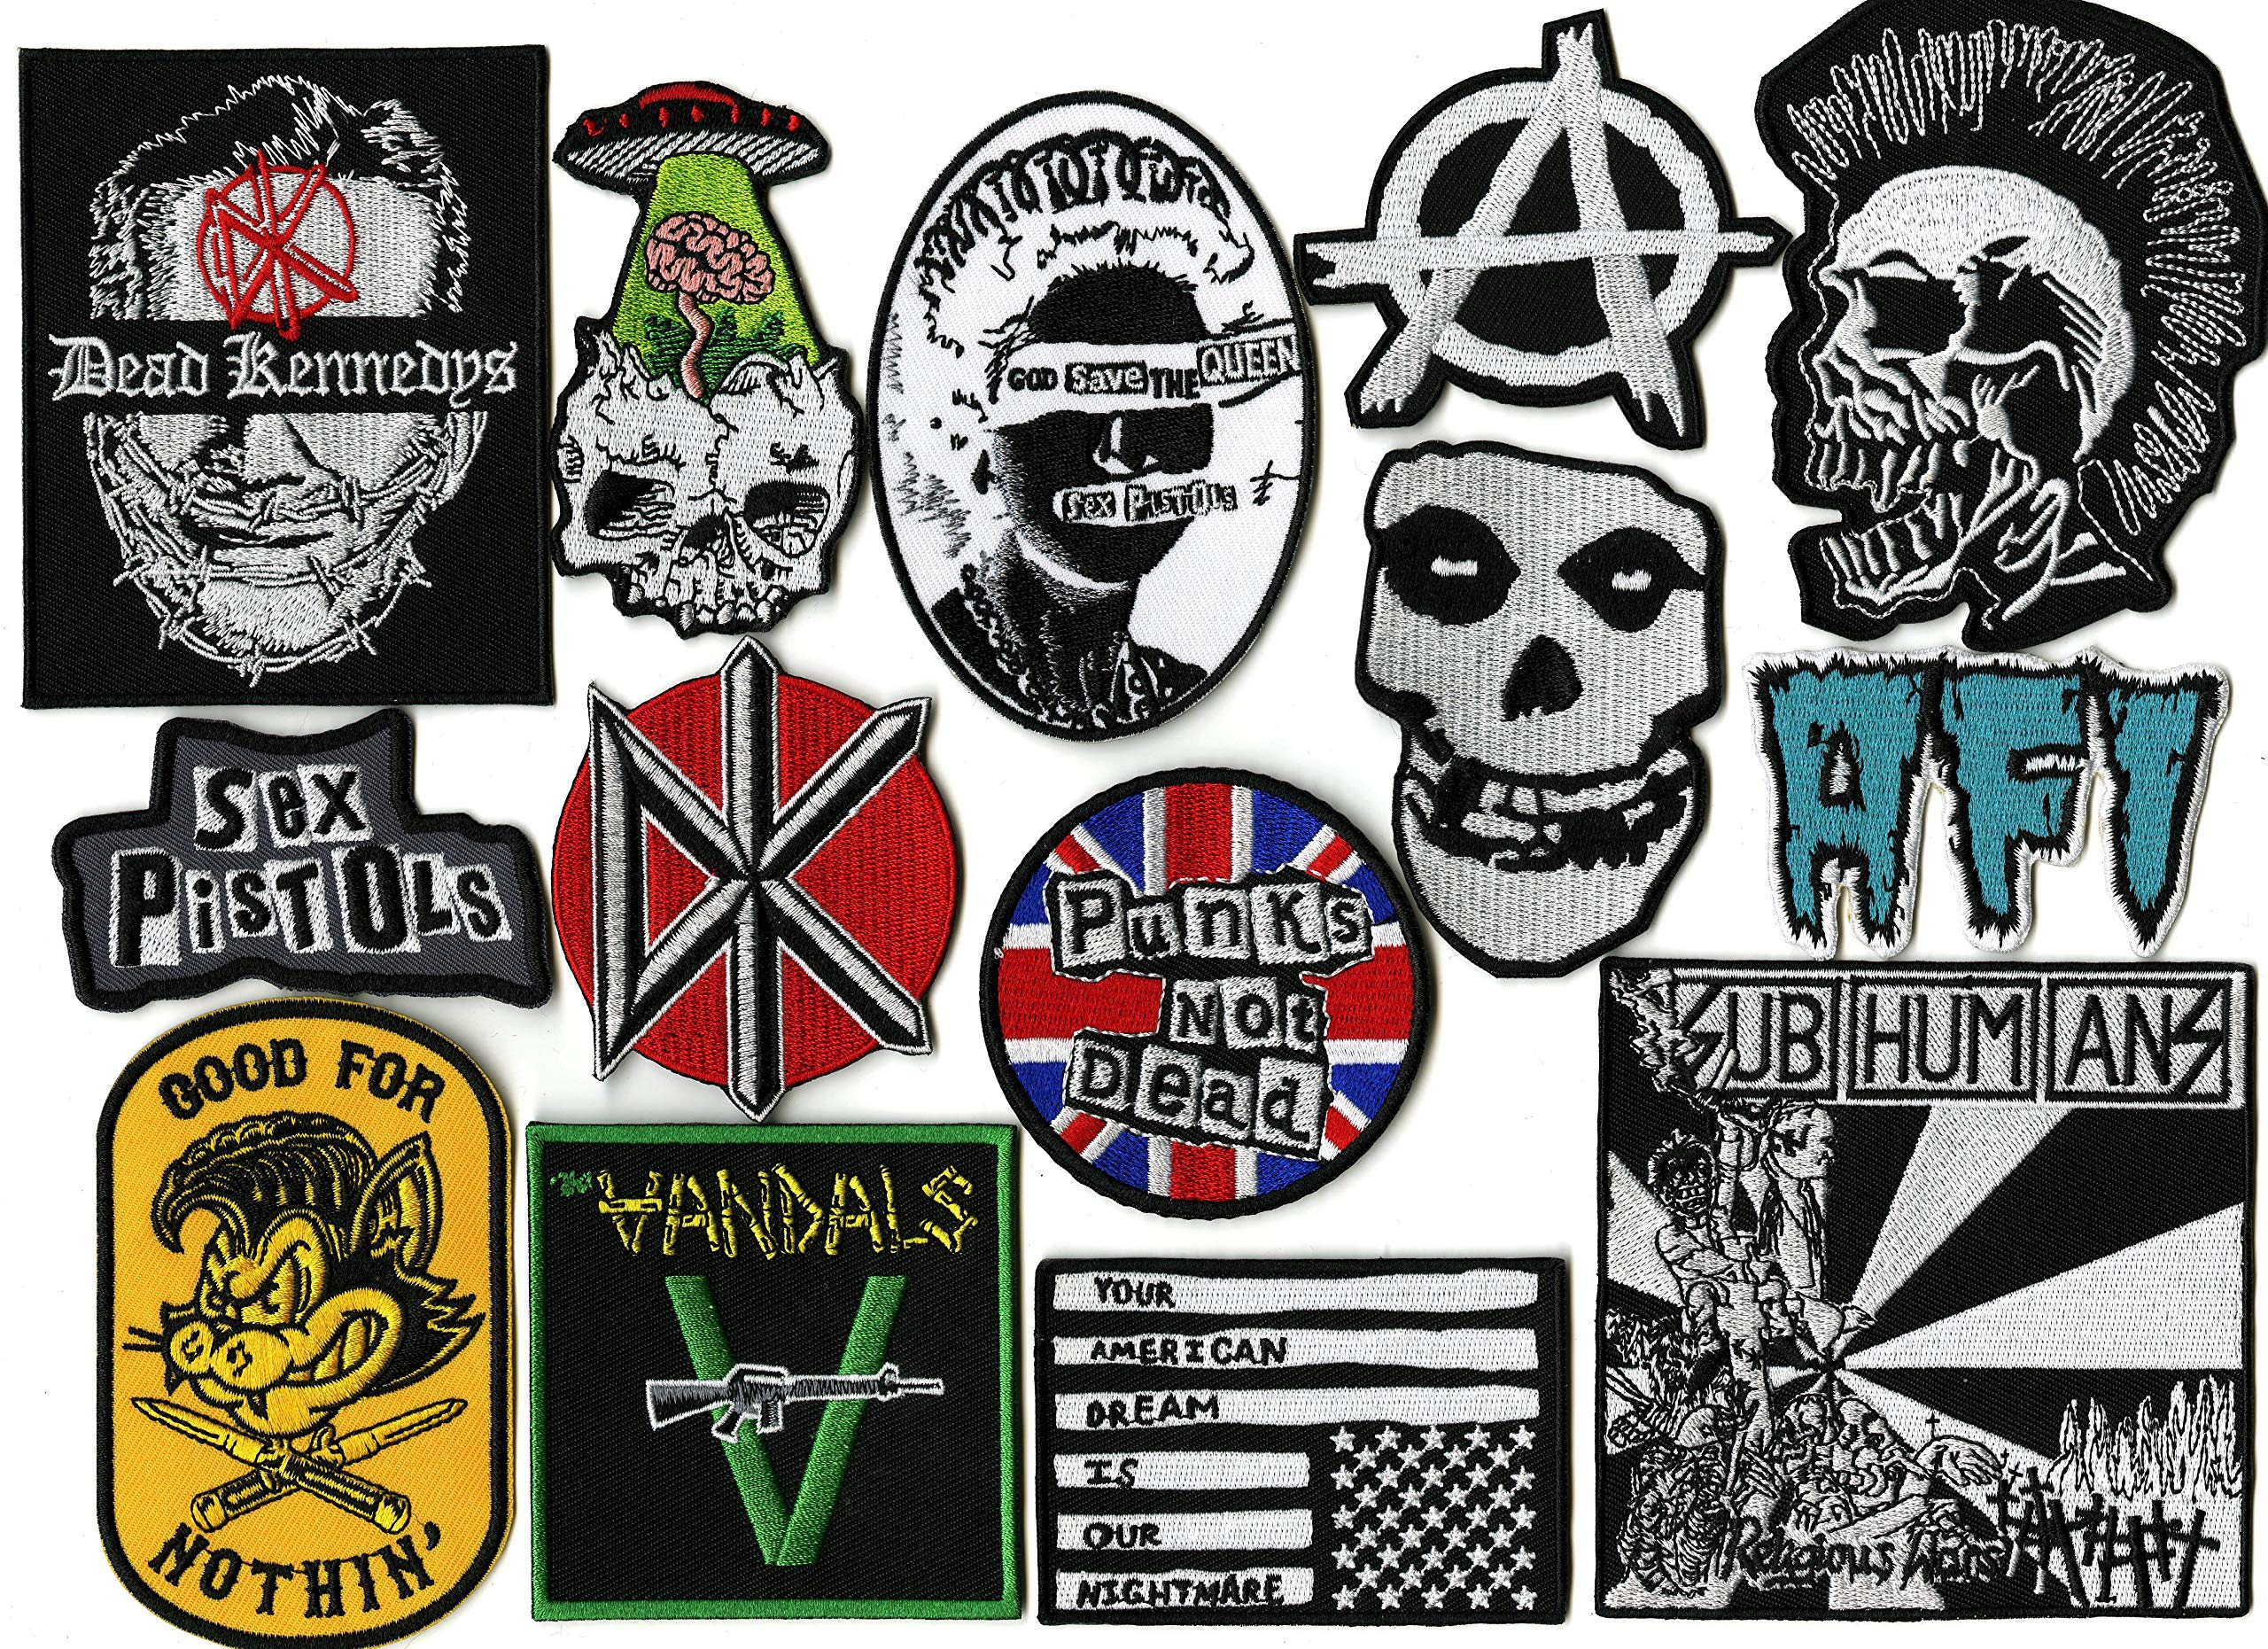 14 pc Punks Not Dead Patch Set | Dead Kennedys | Misfits | The Vandals | Anarchy | AFI | SUBHUMANZ | Metal Skull | Small Embroidered Band Patches - by Nixon Thread Co. by Nixon Thread Co.